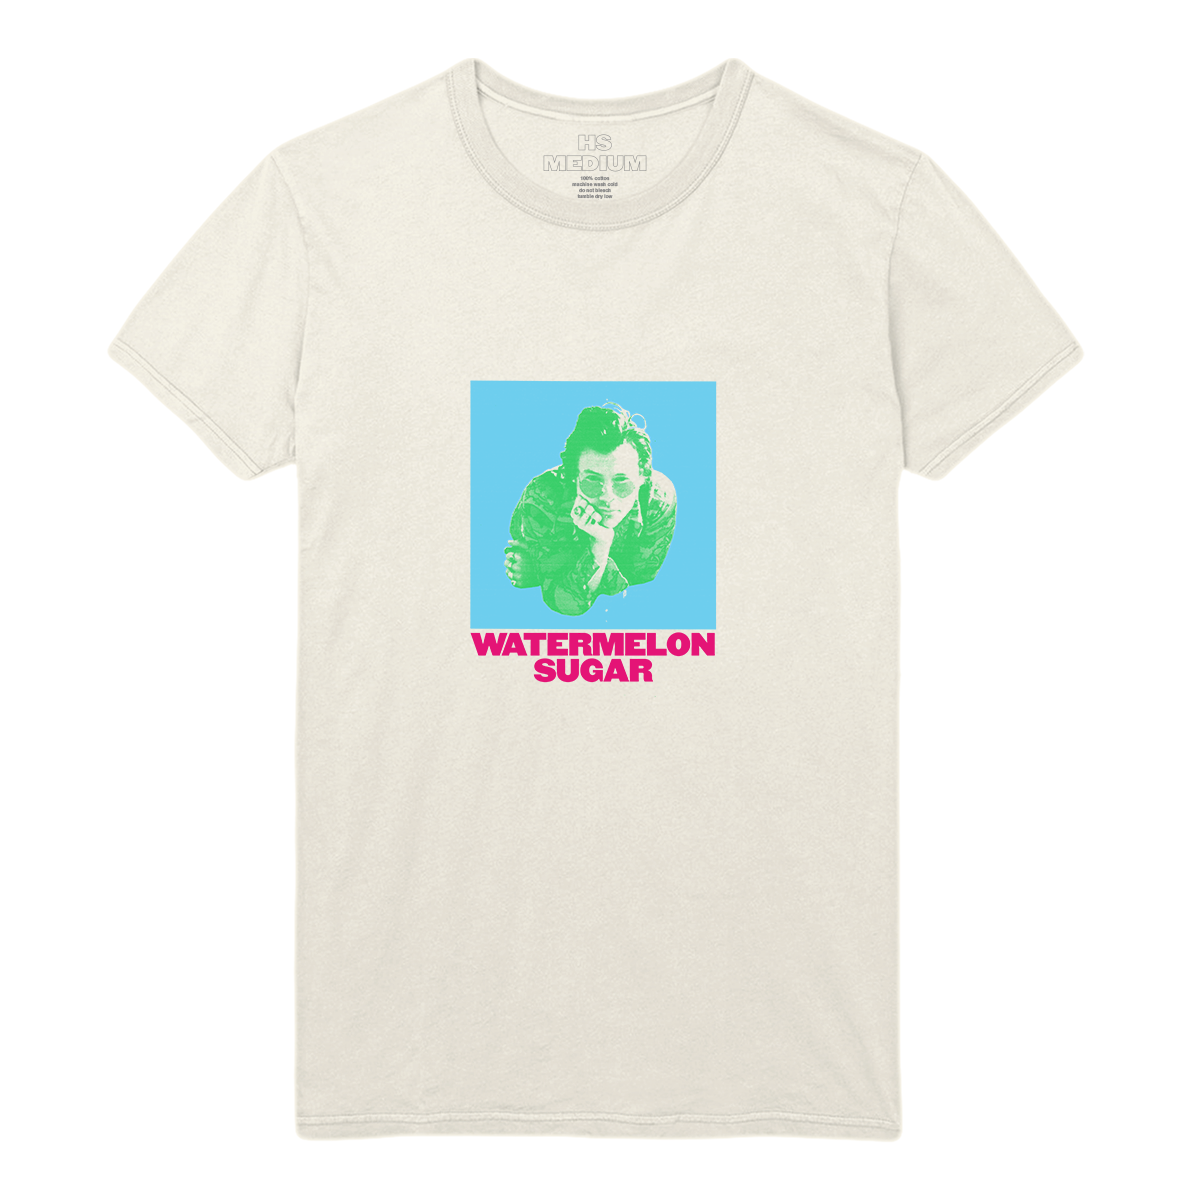 Watermelon Sugar White Tee